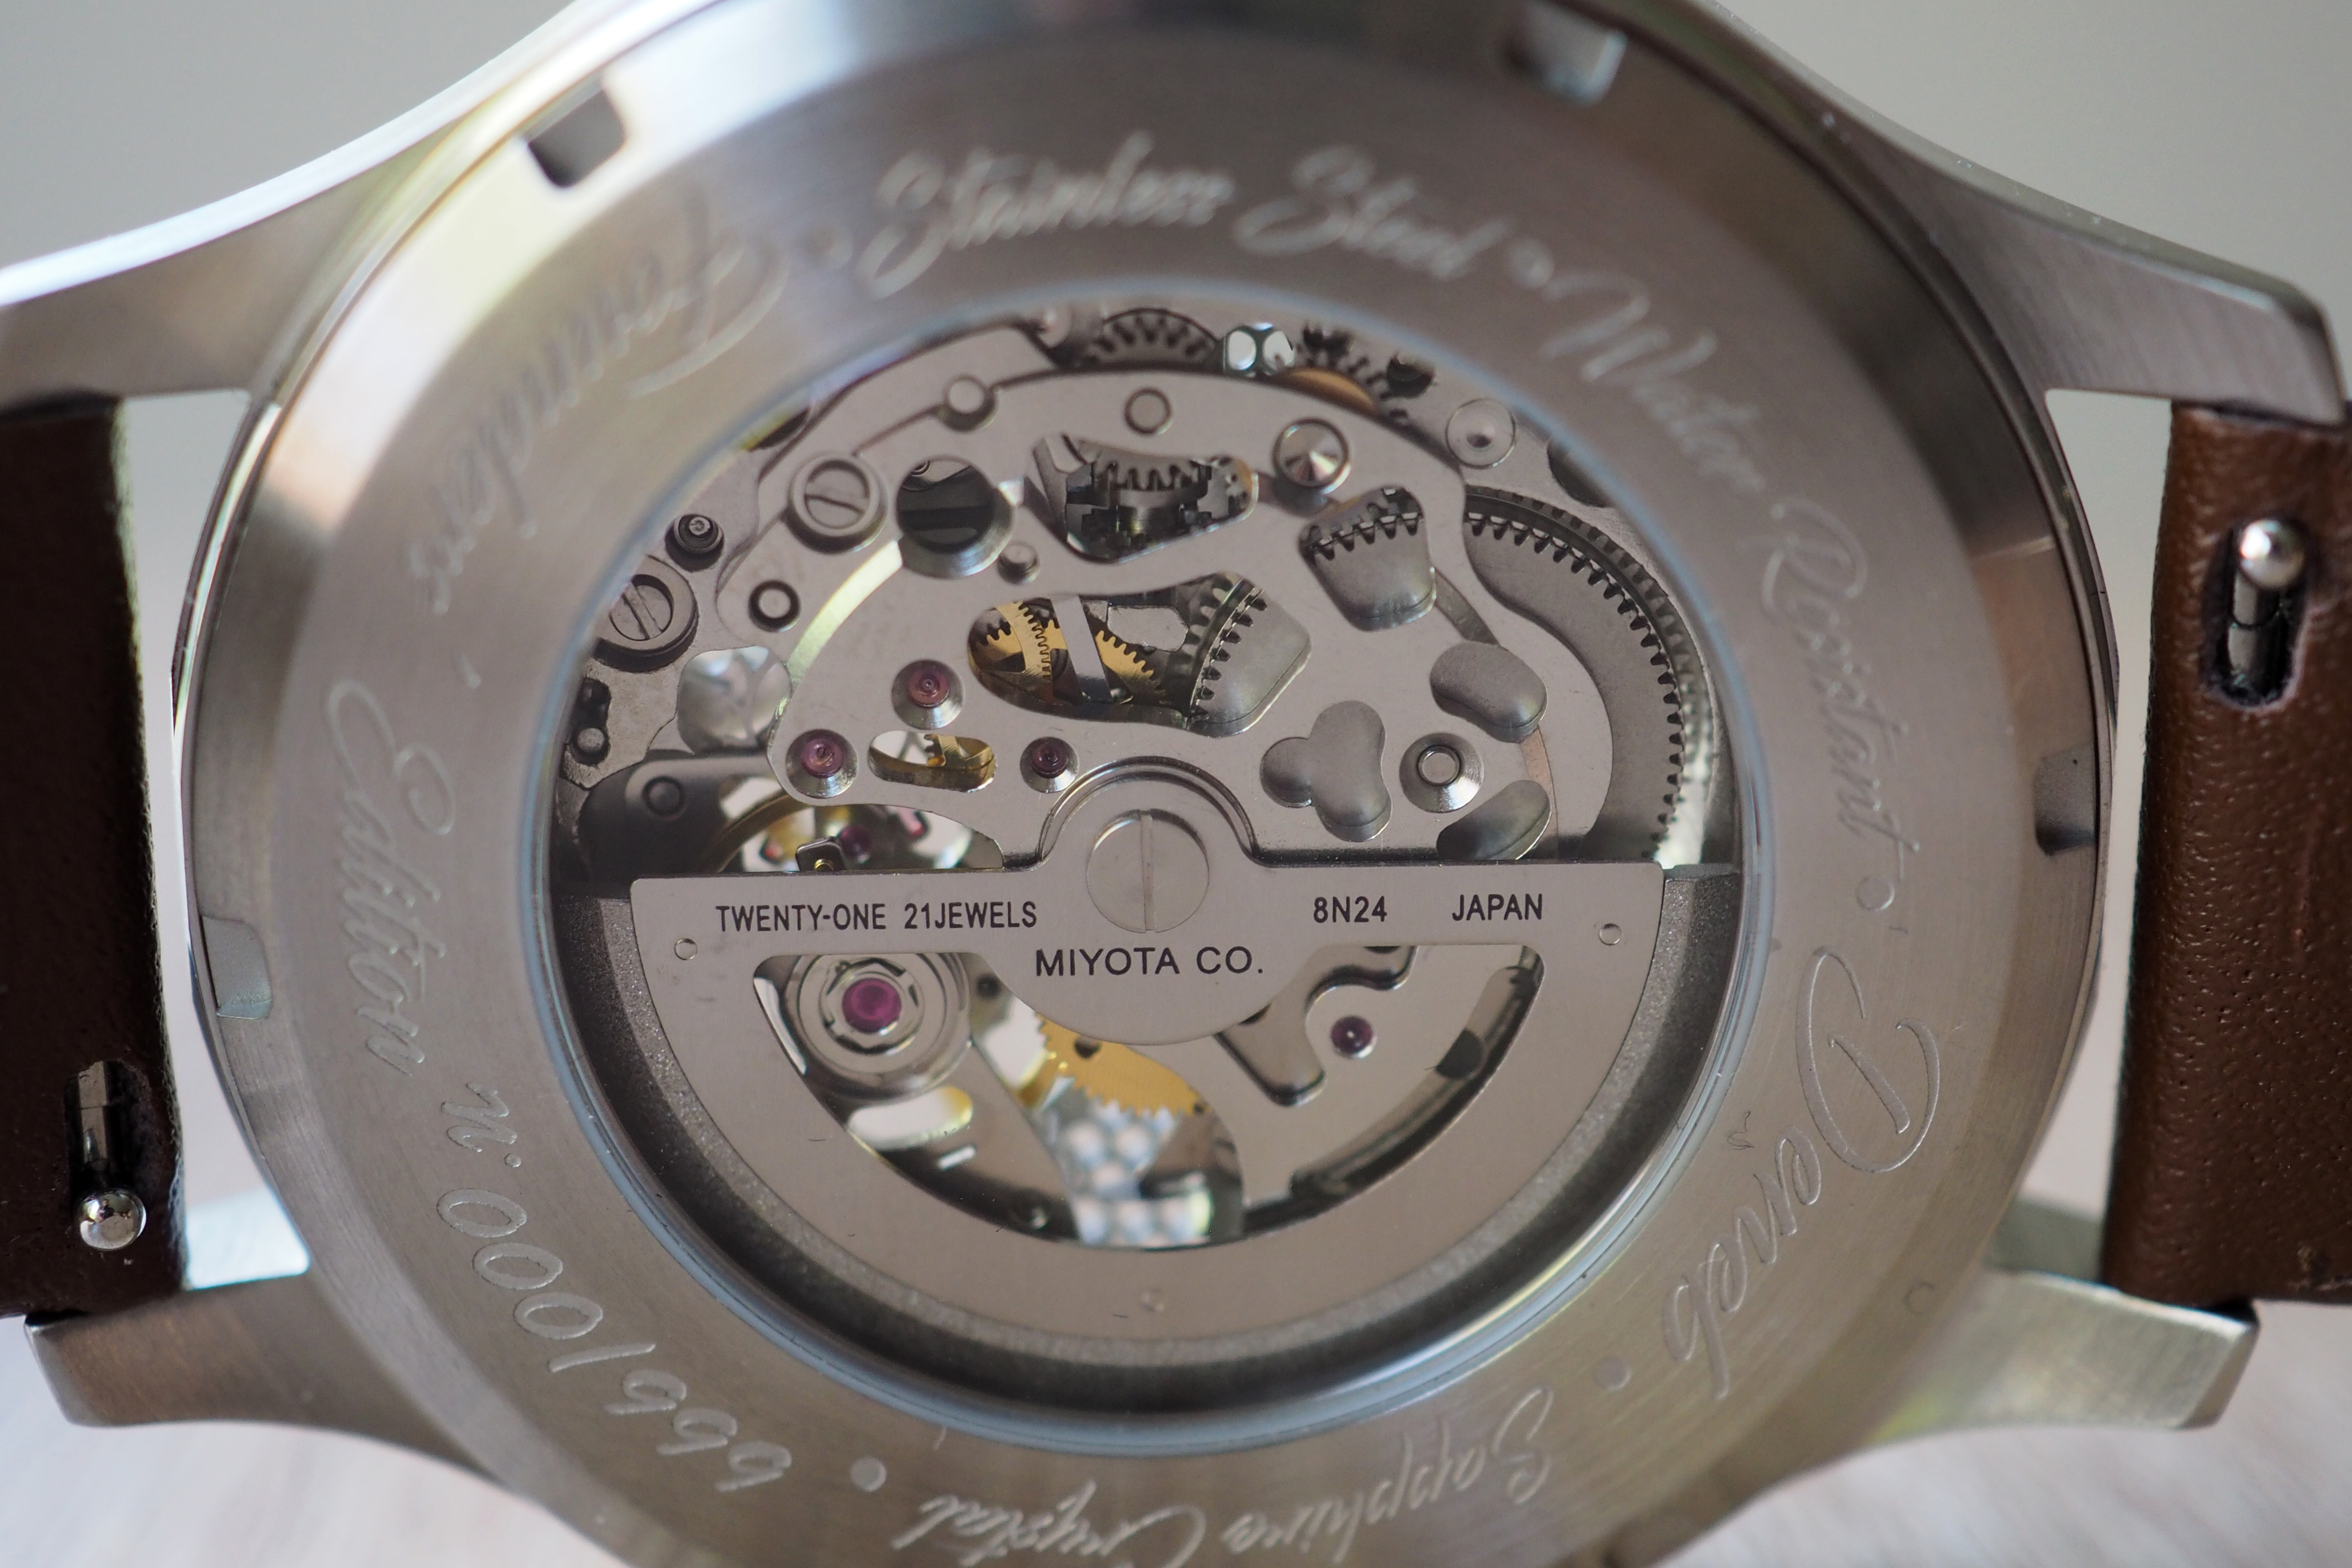 8N24 automatic movement